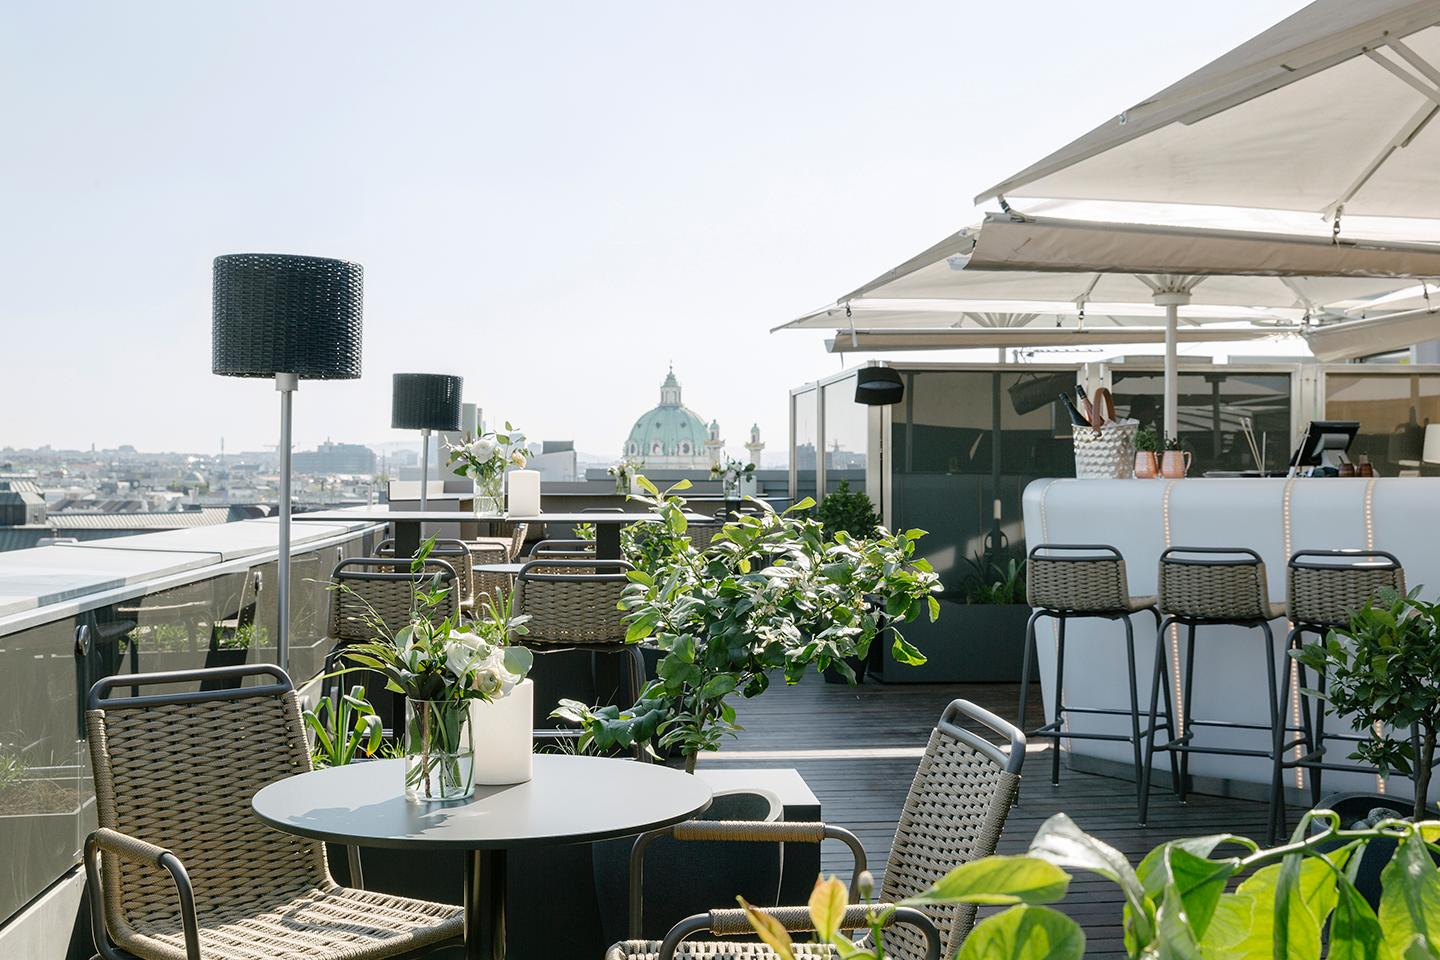 The Atmosphere Rooftop Bar offers a magnificent view across the city center